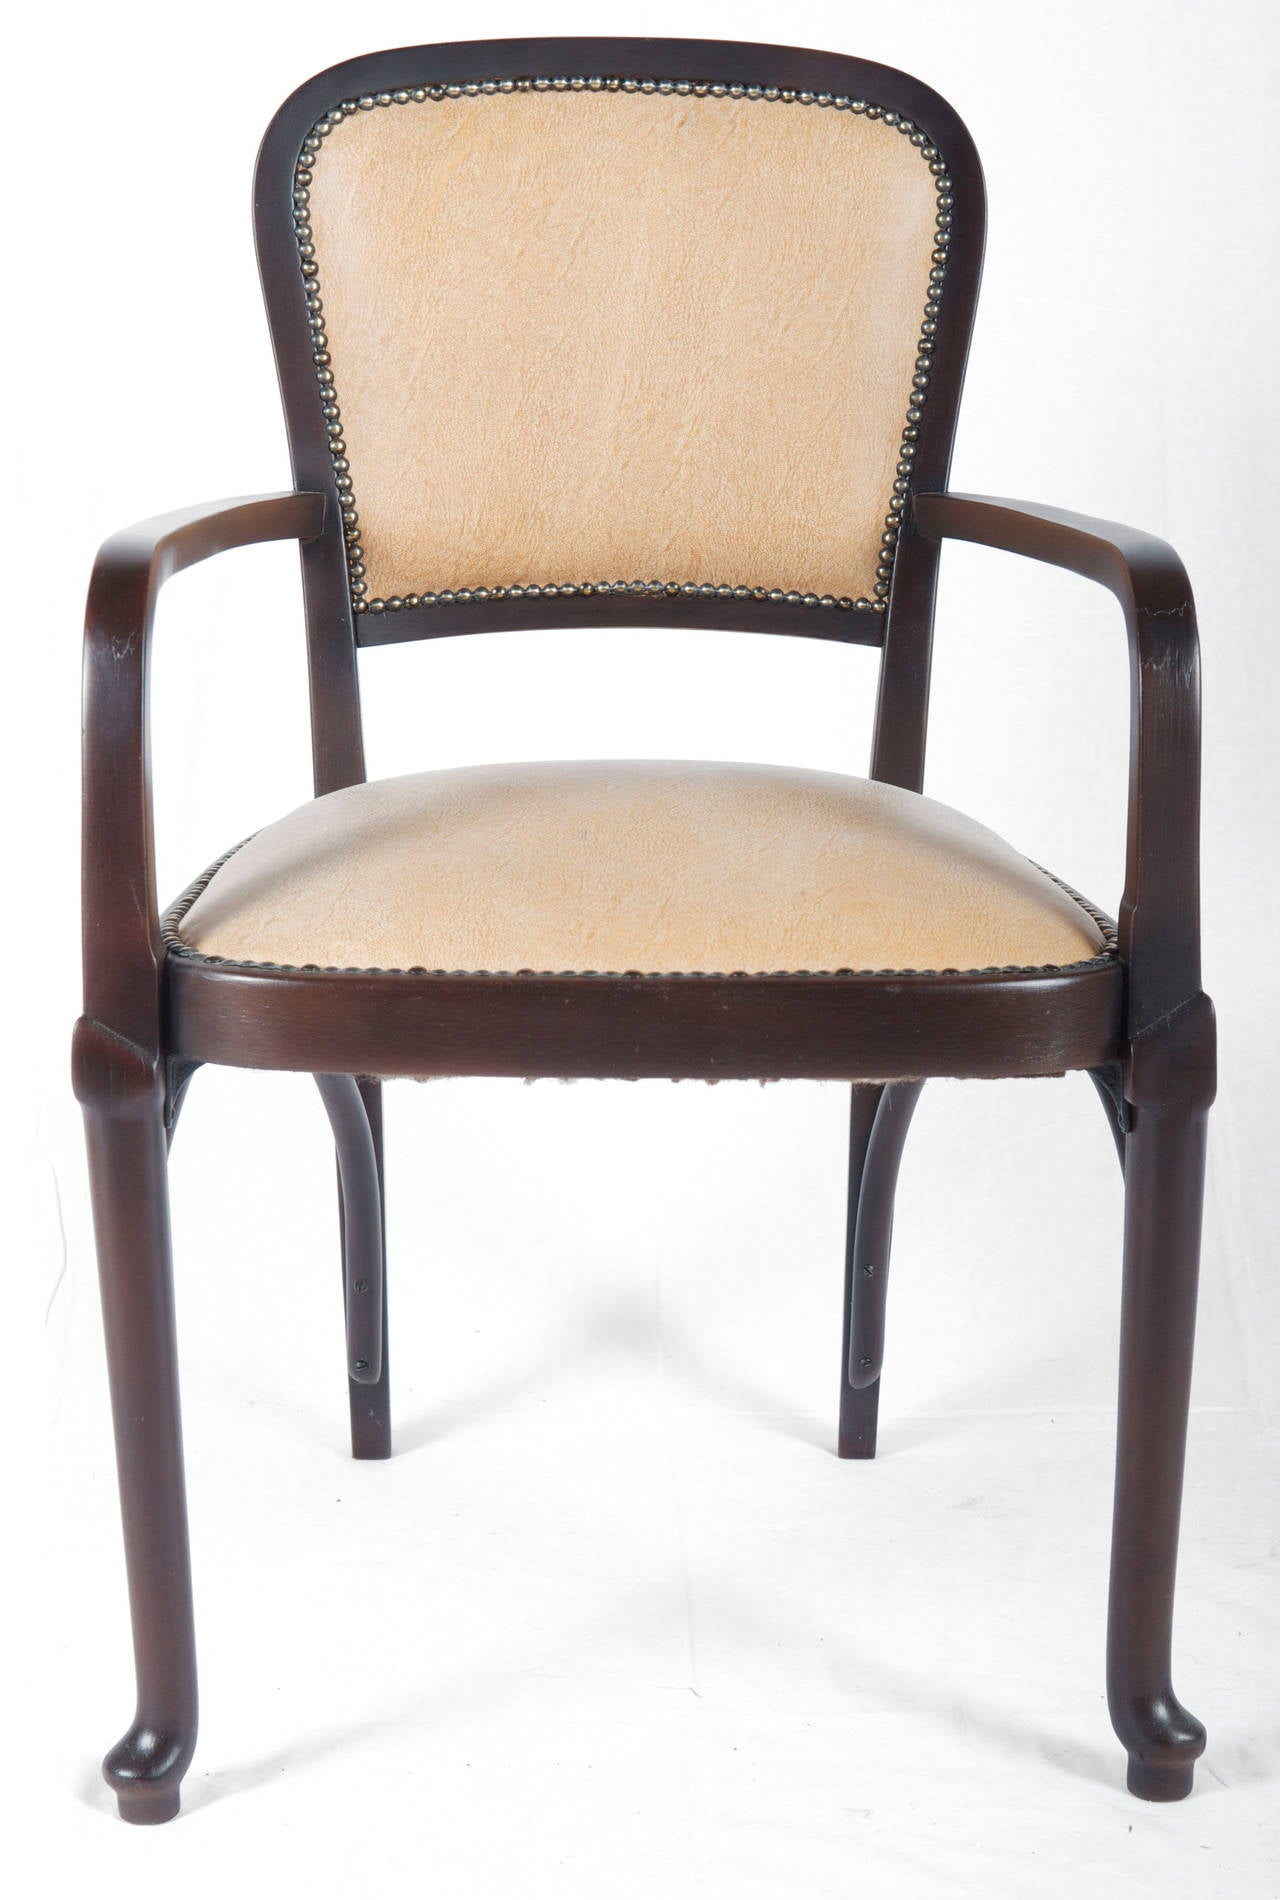 Thonet Armchair For Sale at 1stdibs